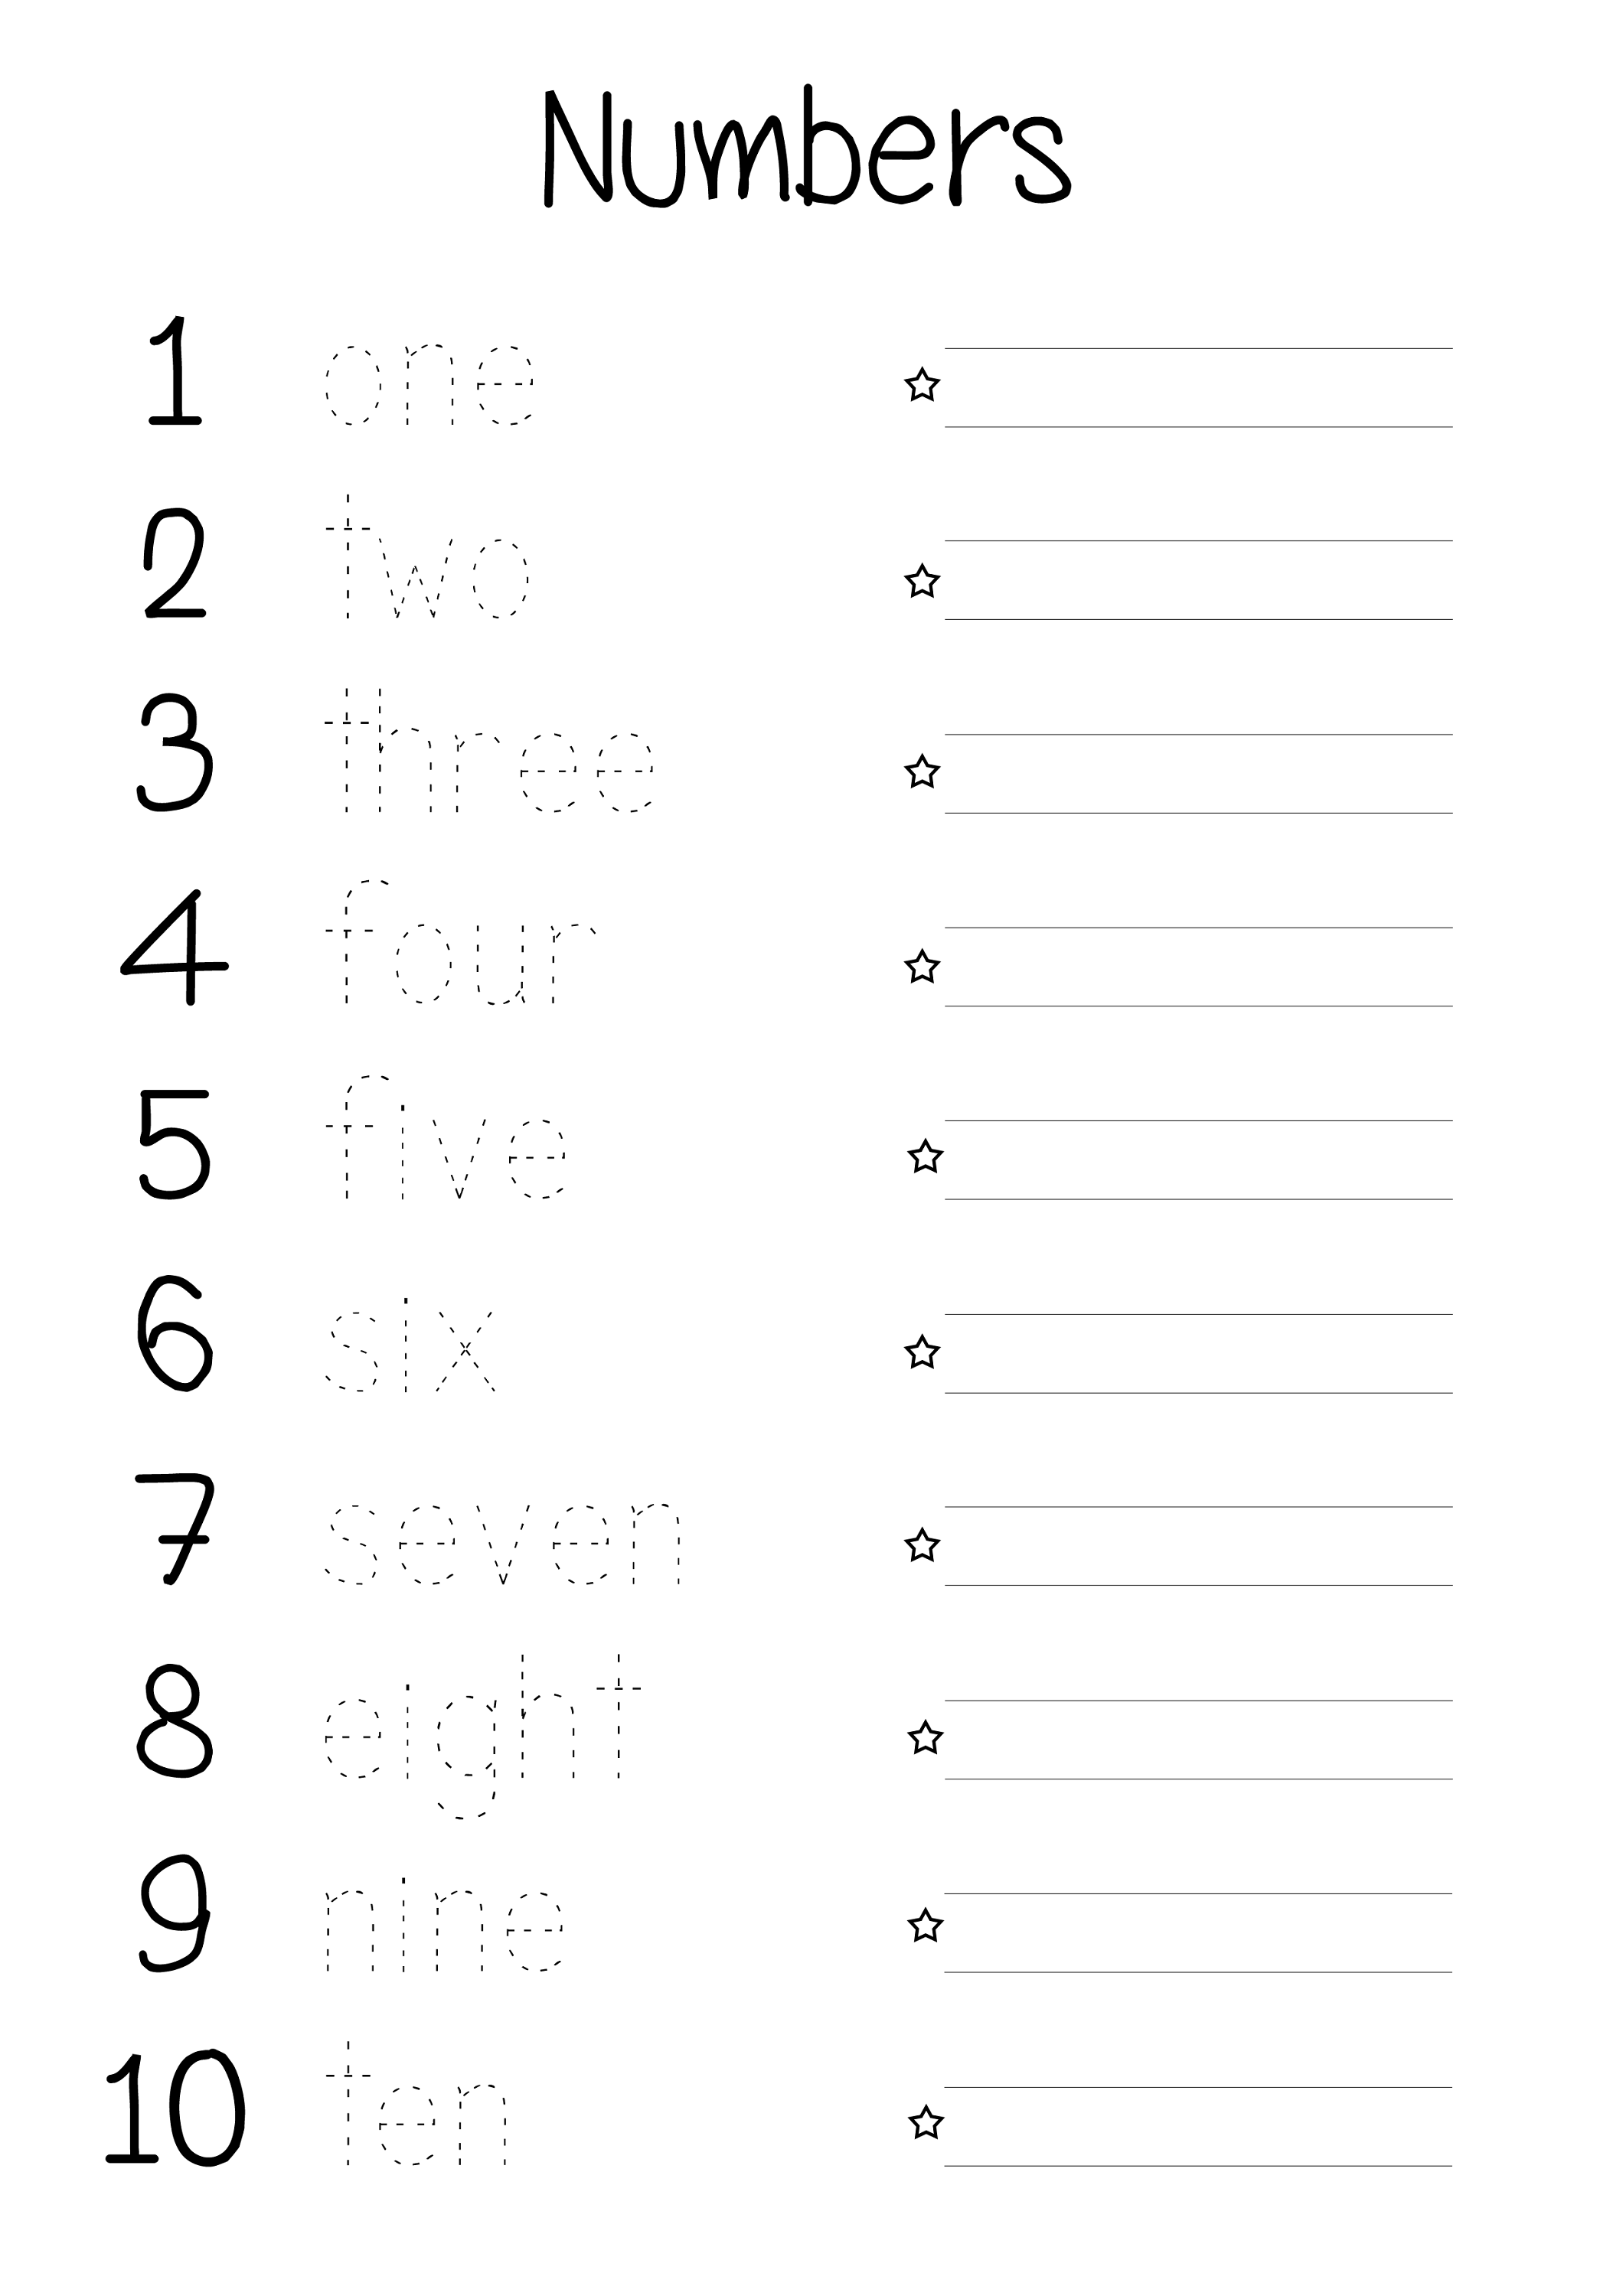 Printable Number Words Worksheets | Activity Shelter